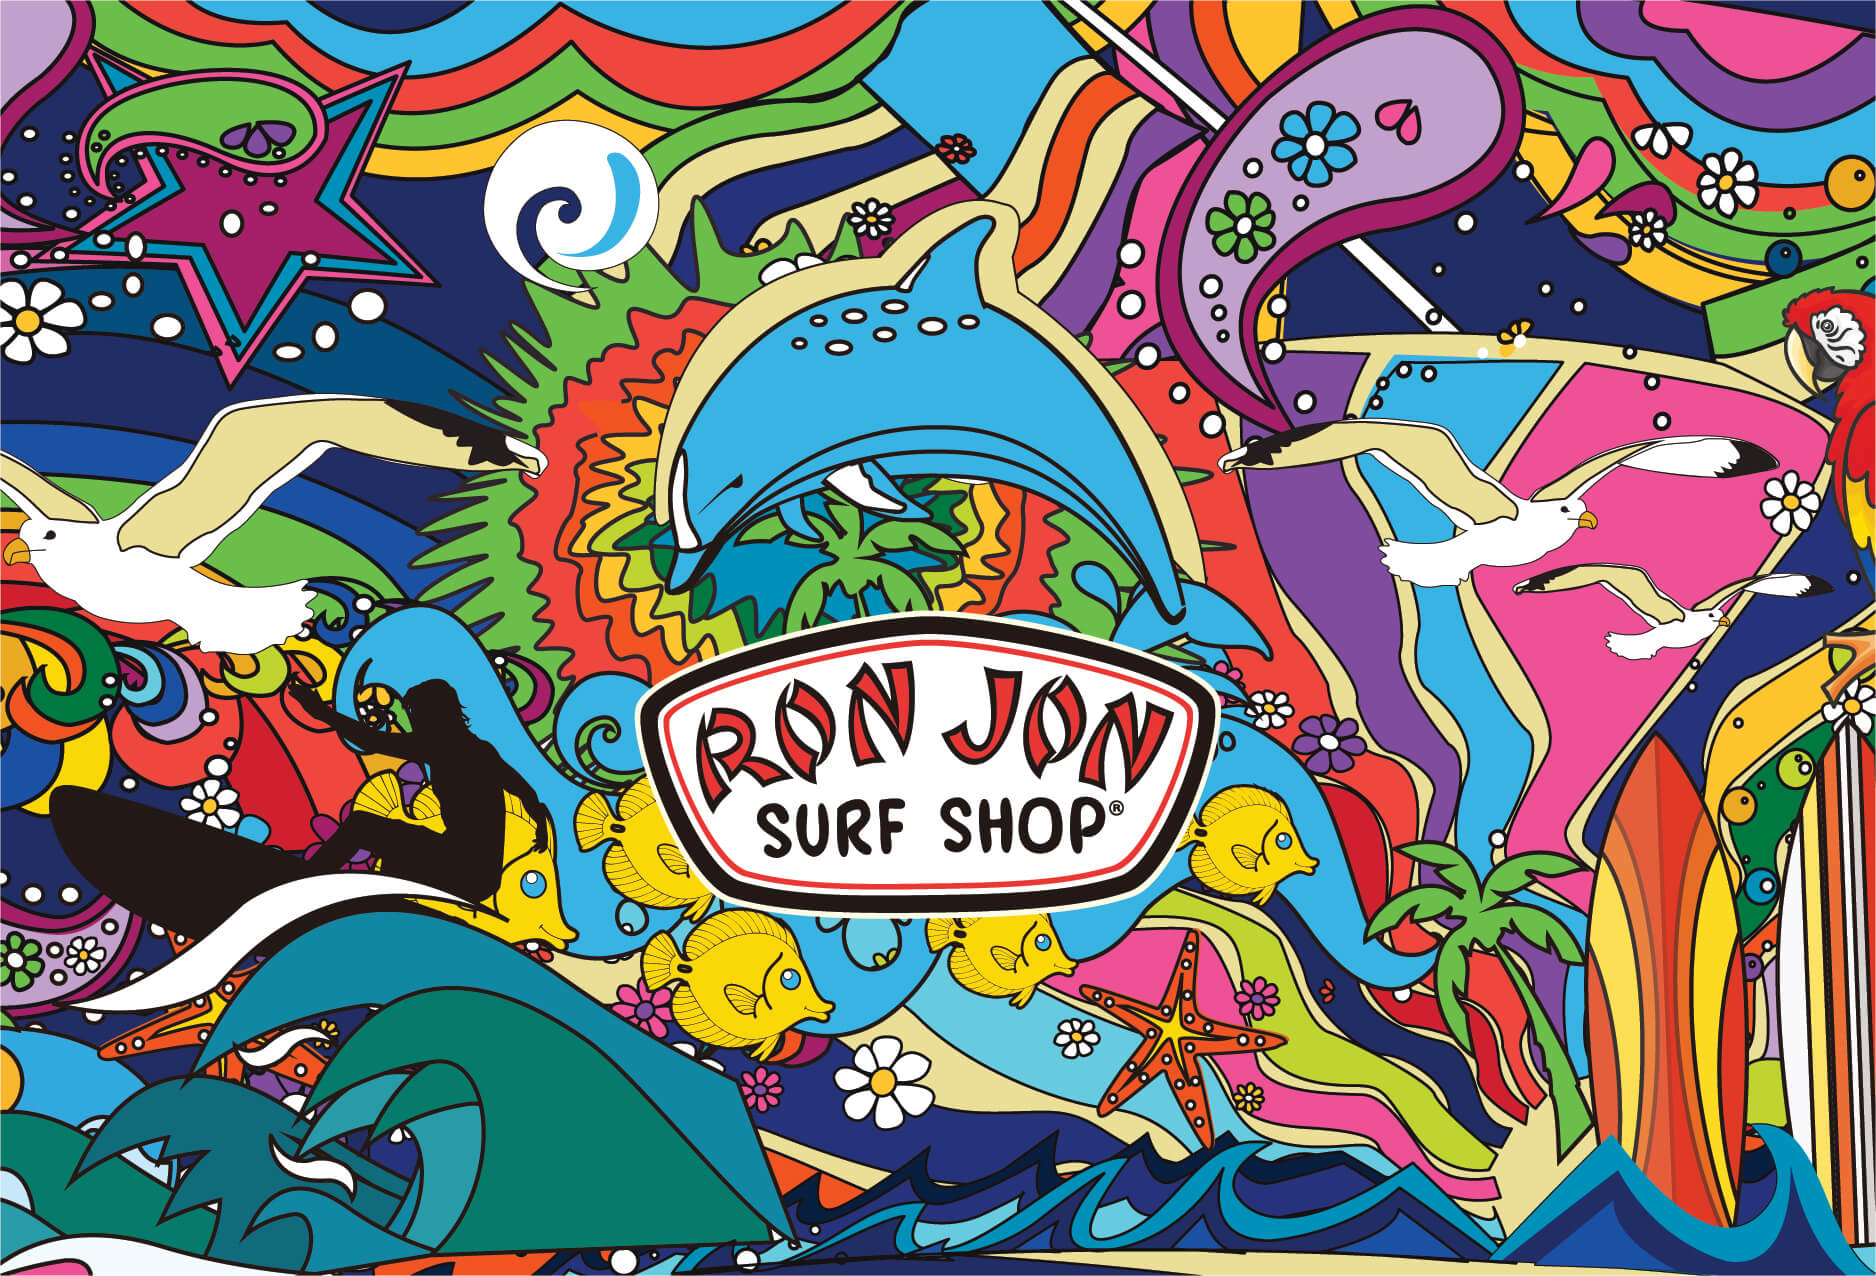 Puzzle showing Ron Jon logo and colorful dolphin graphic